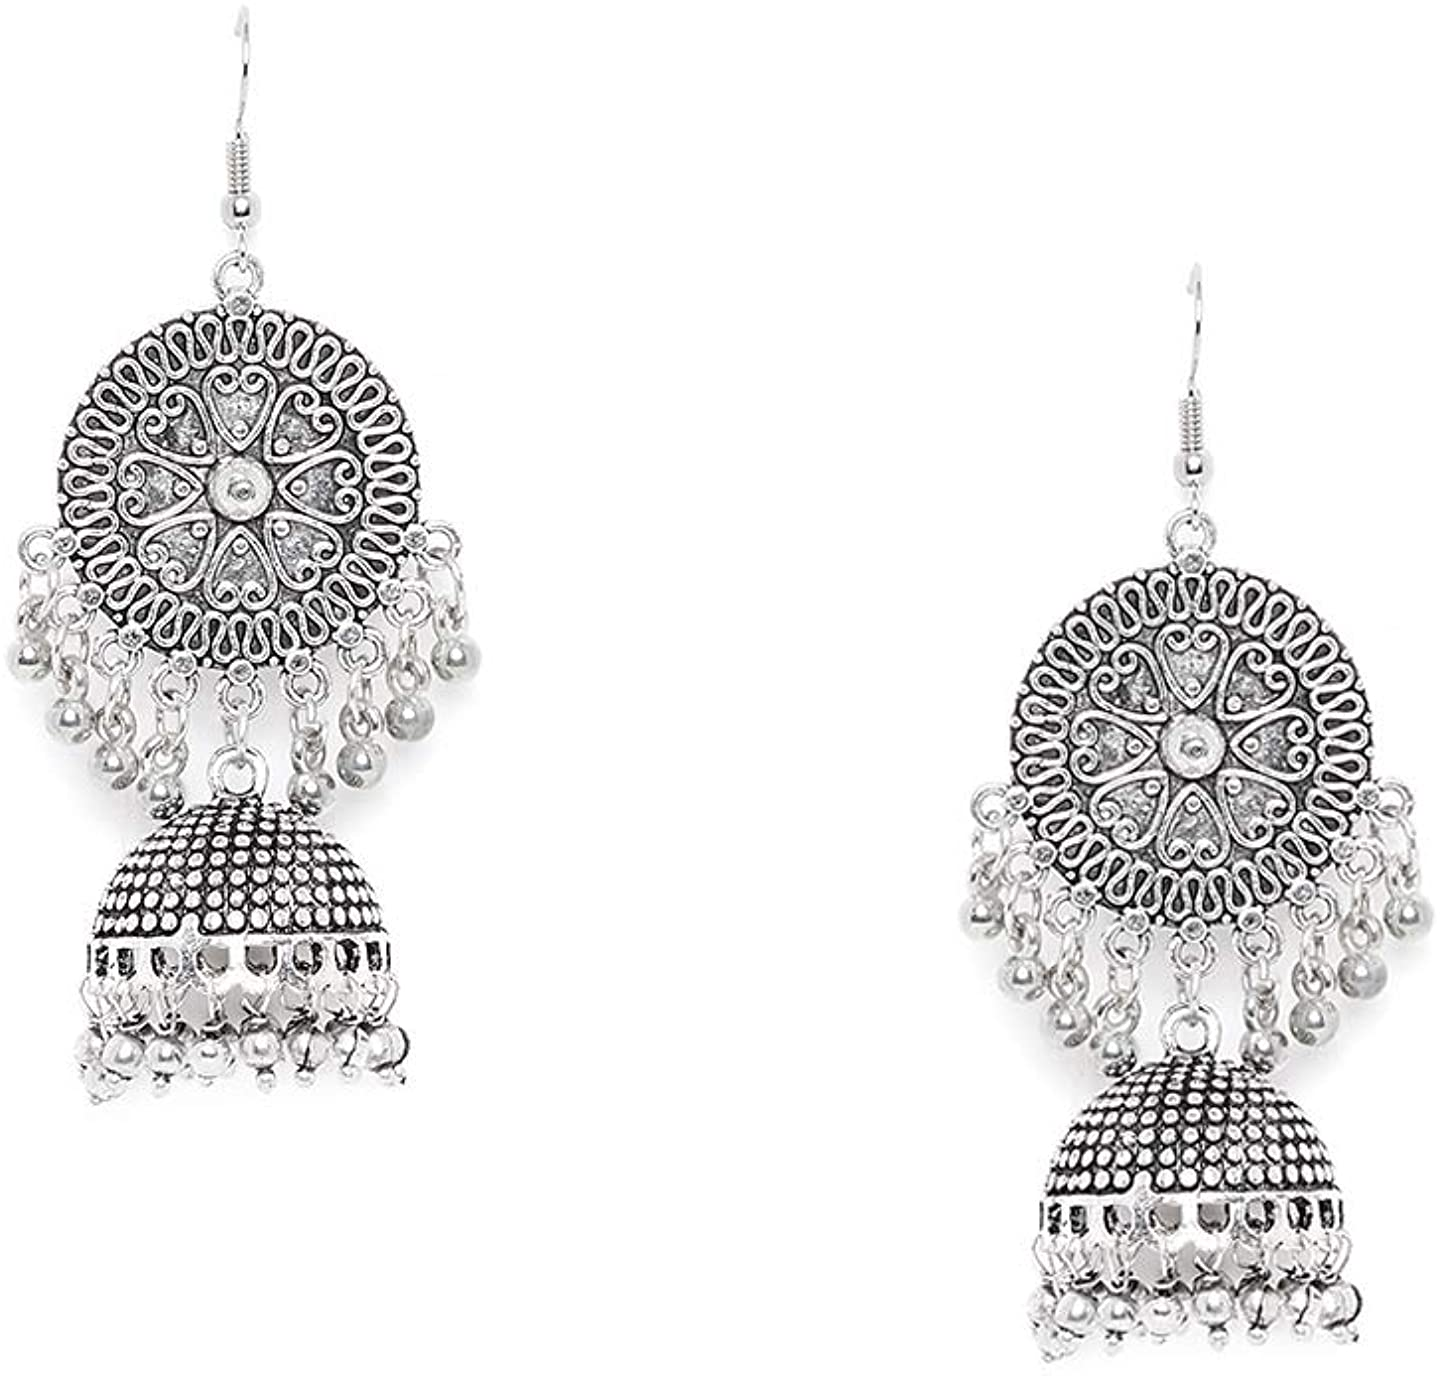 ZeroKaata Fashion Jewellery Hearts And Everything Pretty Embellished Tribal Jewellery Jhumki Earrings For Women & Girls